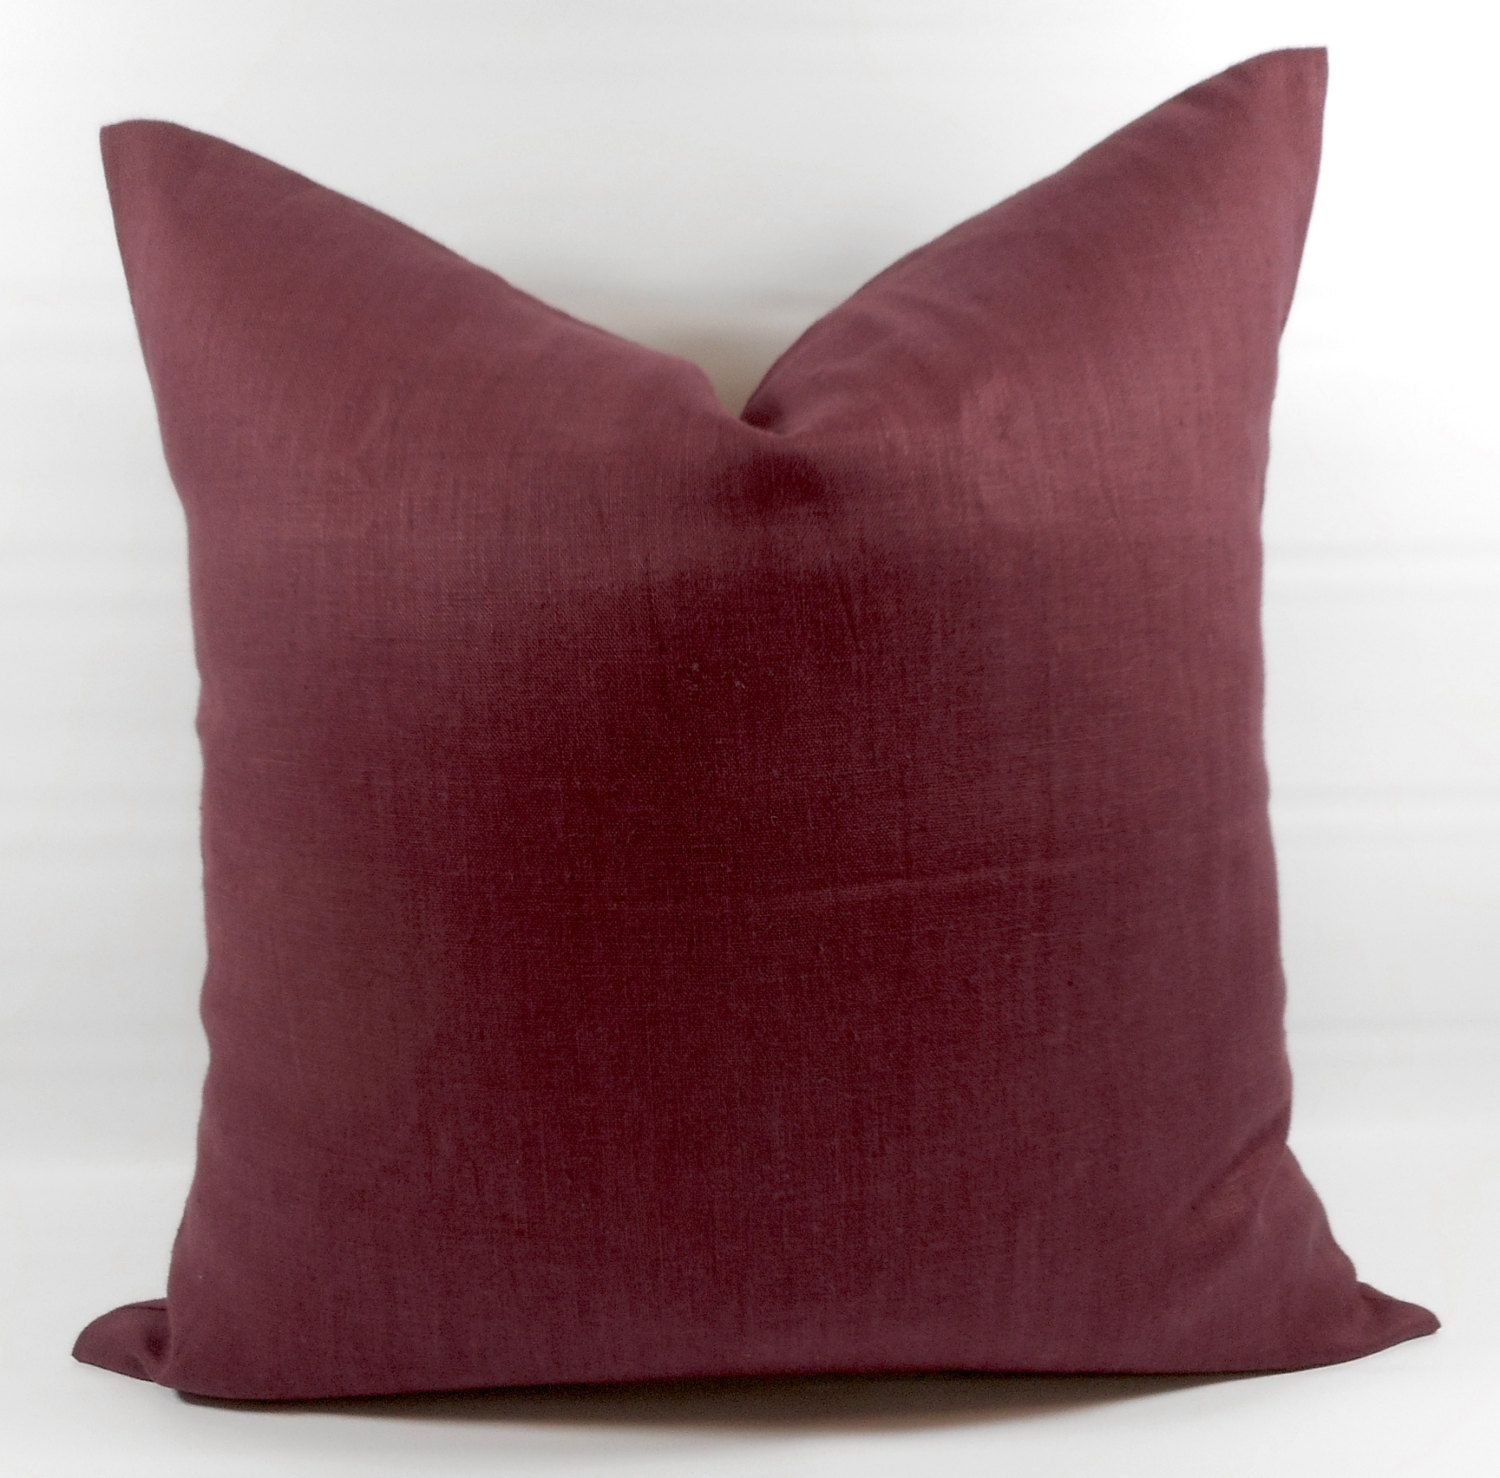 Wired Wine Linen Pillow Cover Wine Red 100 European Linen Etsy Linen Pillow Covers Linen Pillows European Linens